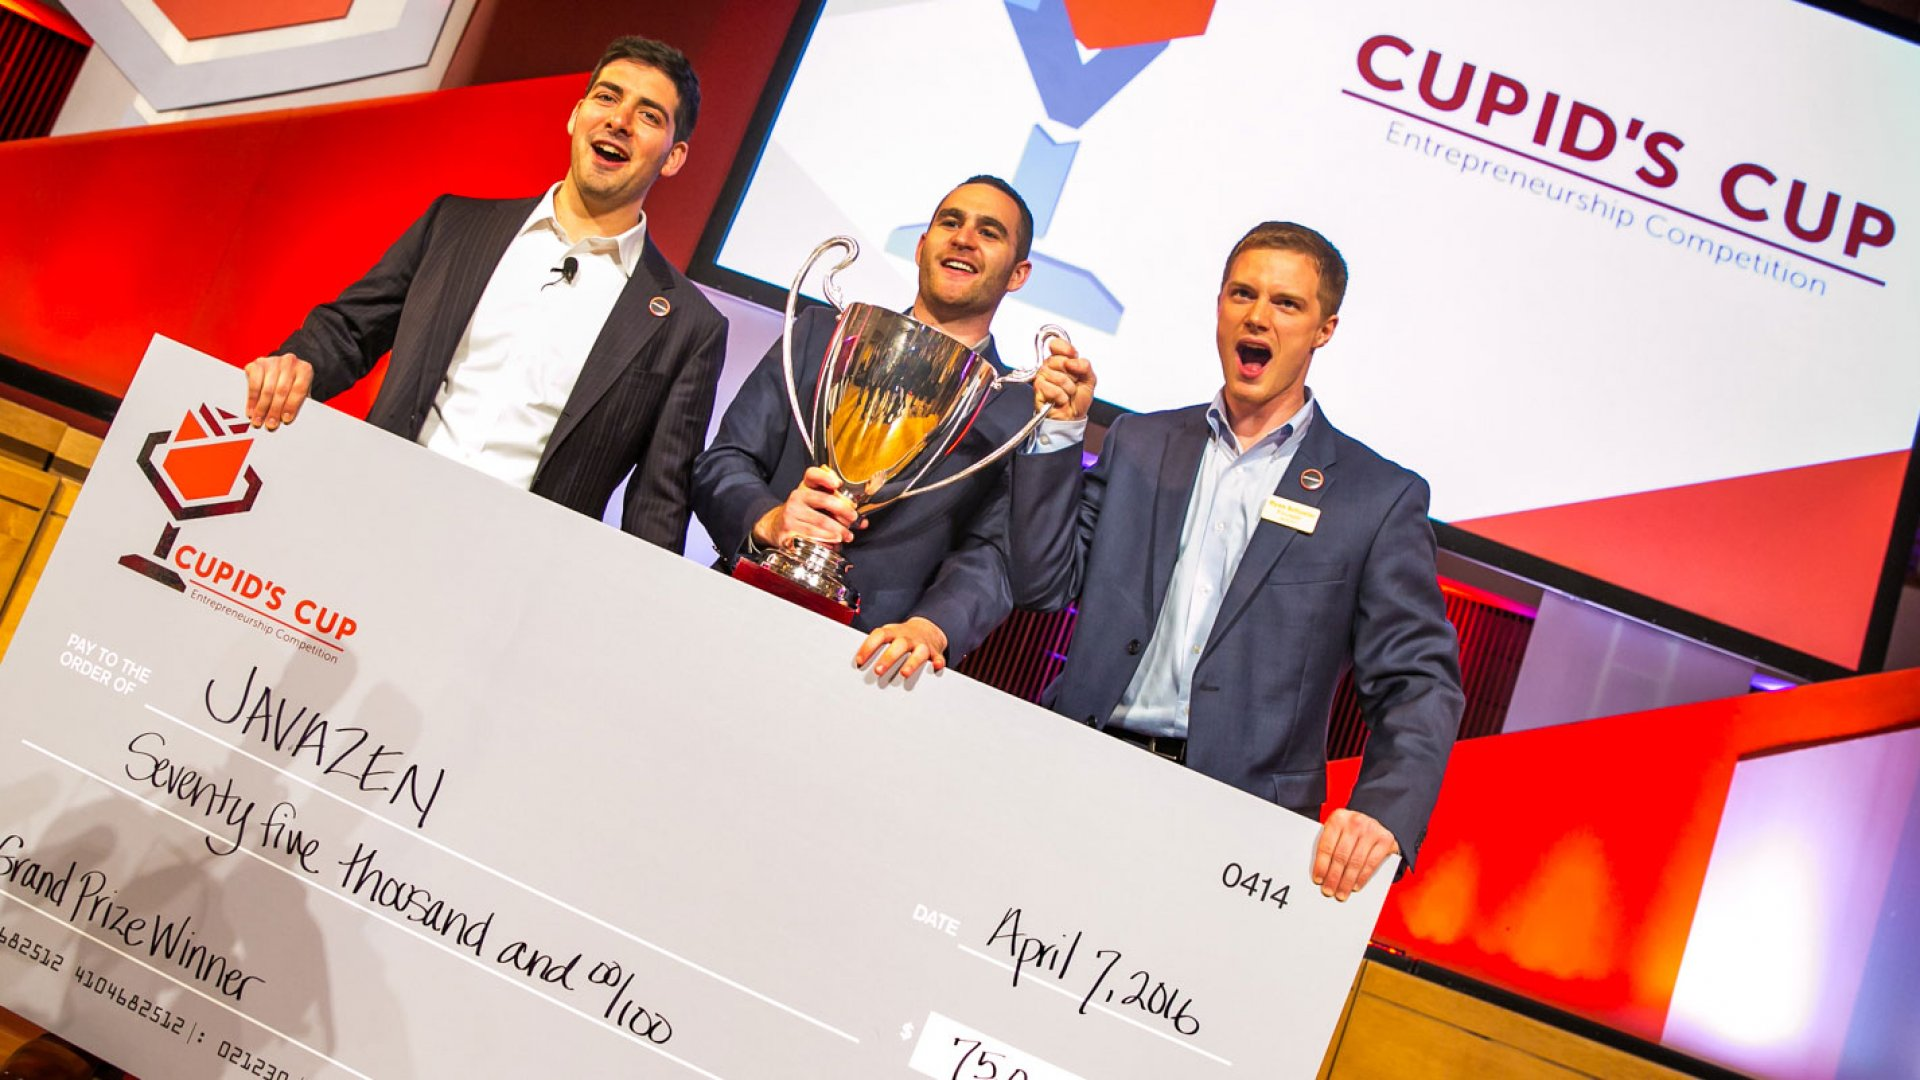 Co-Founders of Javazen, Aaron Wallach, Eric Golman and Ryan Schueler, holding the $75,000 grand prize check from the 2016 Cupid's Cup Entrepreneurship Competition.